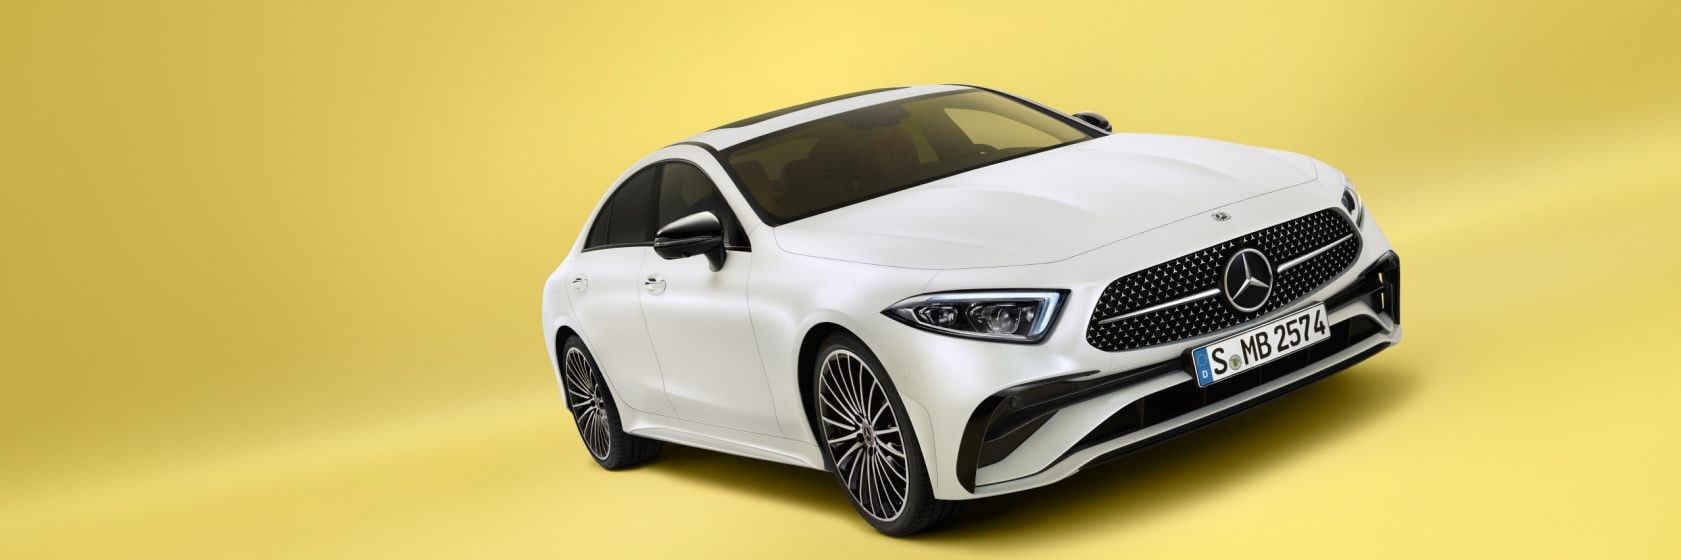 Mercedes-Benz-cls-coupe-2021-yellow